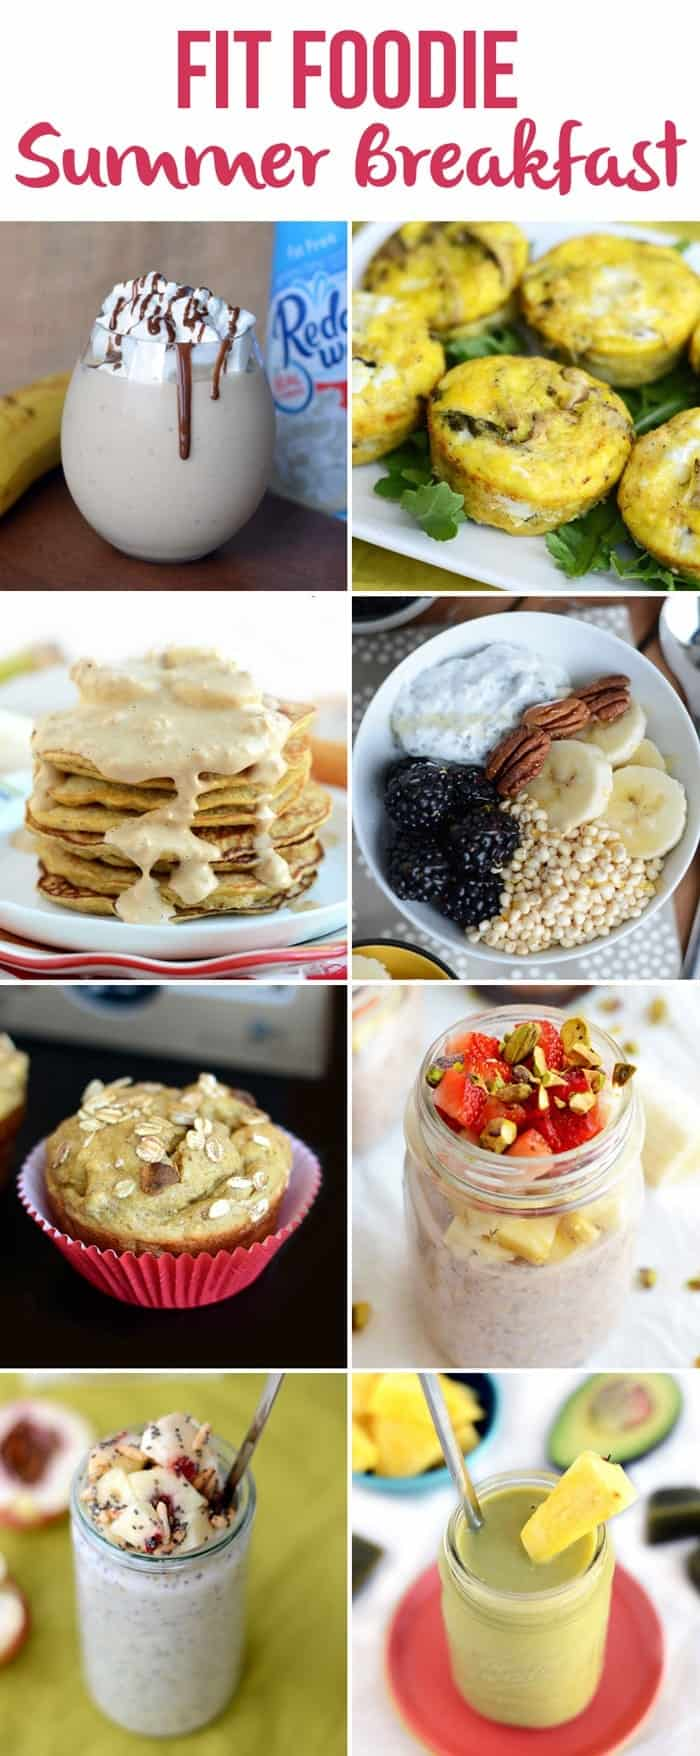 Fit Foodie Summer Breakfasts + 34 other Healthy Summertime Recipes! via FitFoodieFinds.com